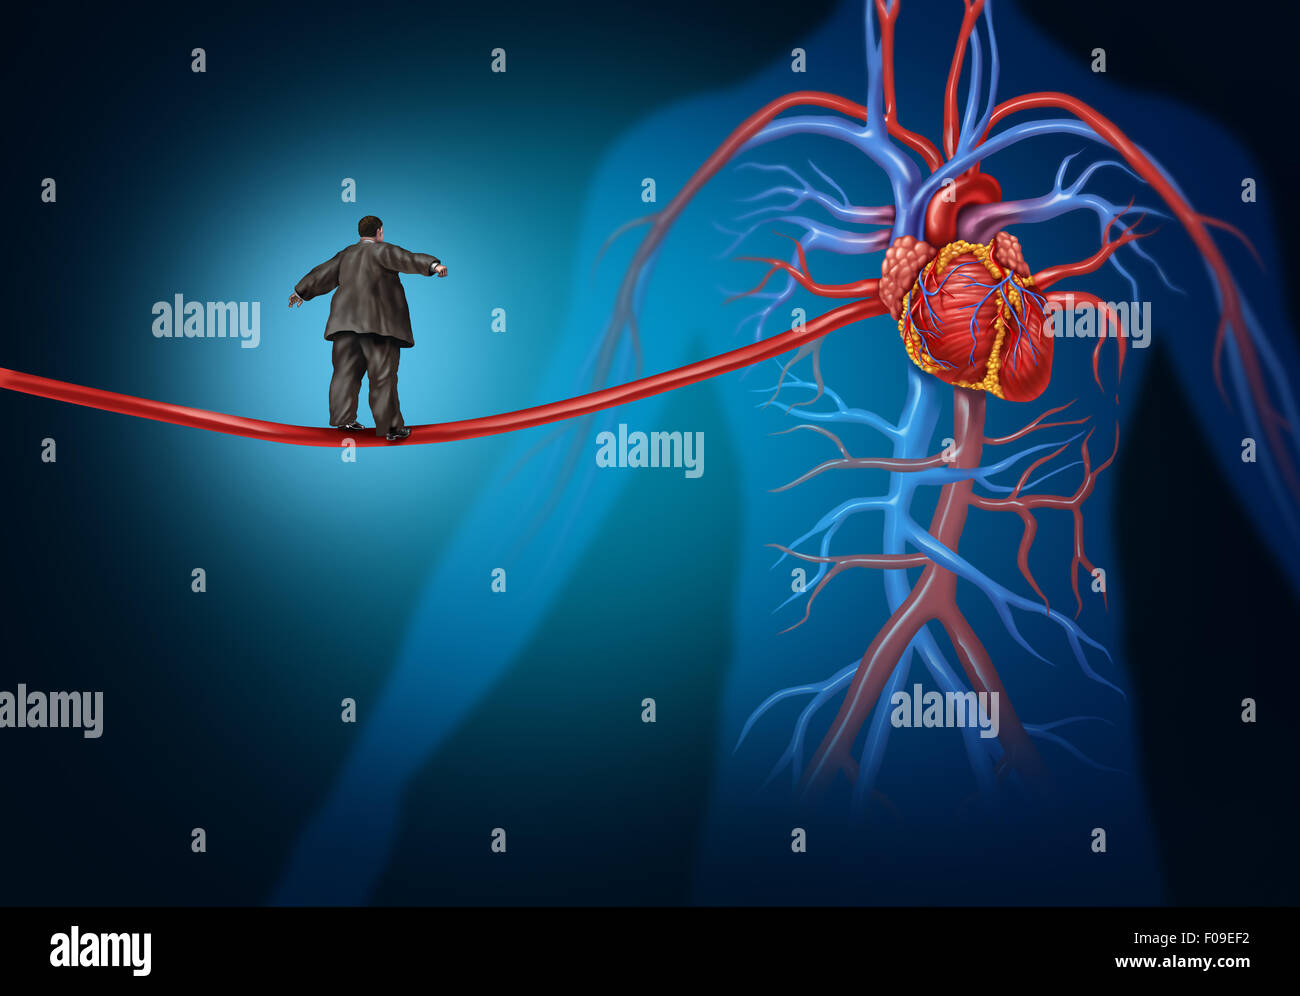 Risk factors for heart disease danger as a medical health care lifestyle concept with an overweight person walking - Stock Image